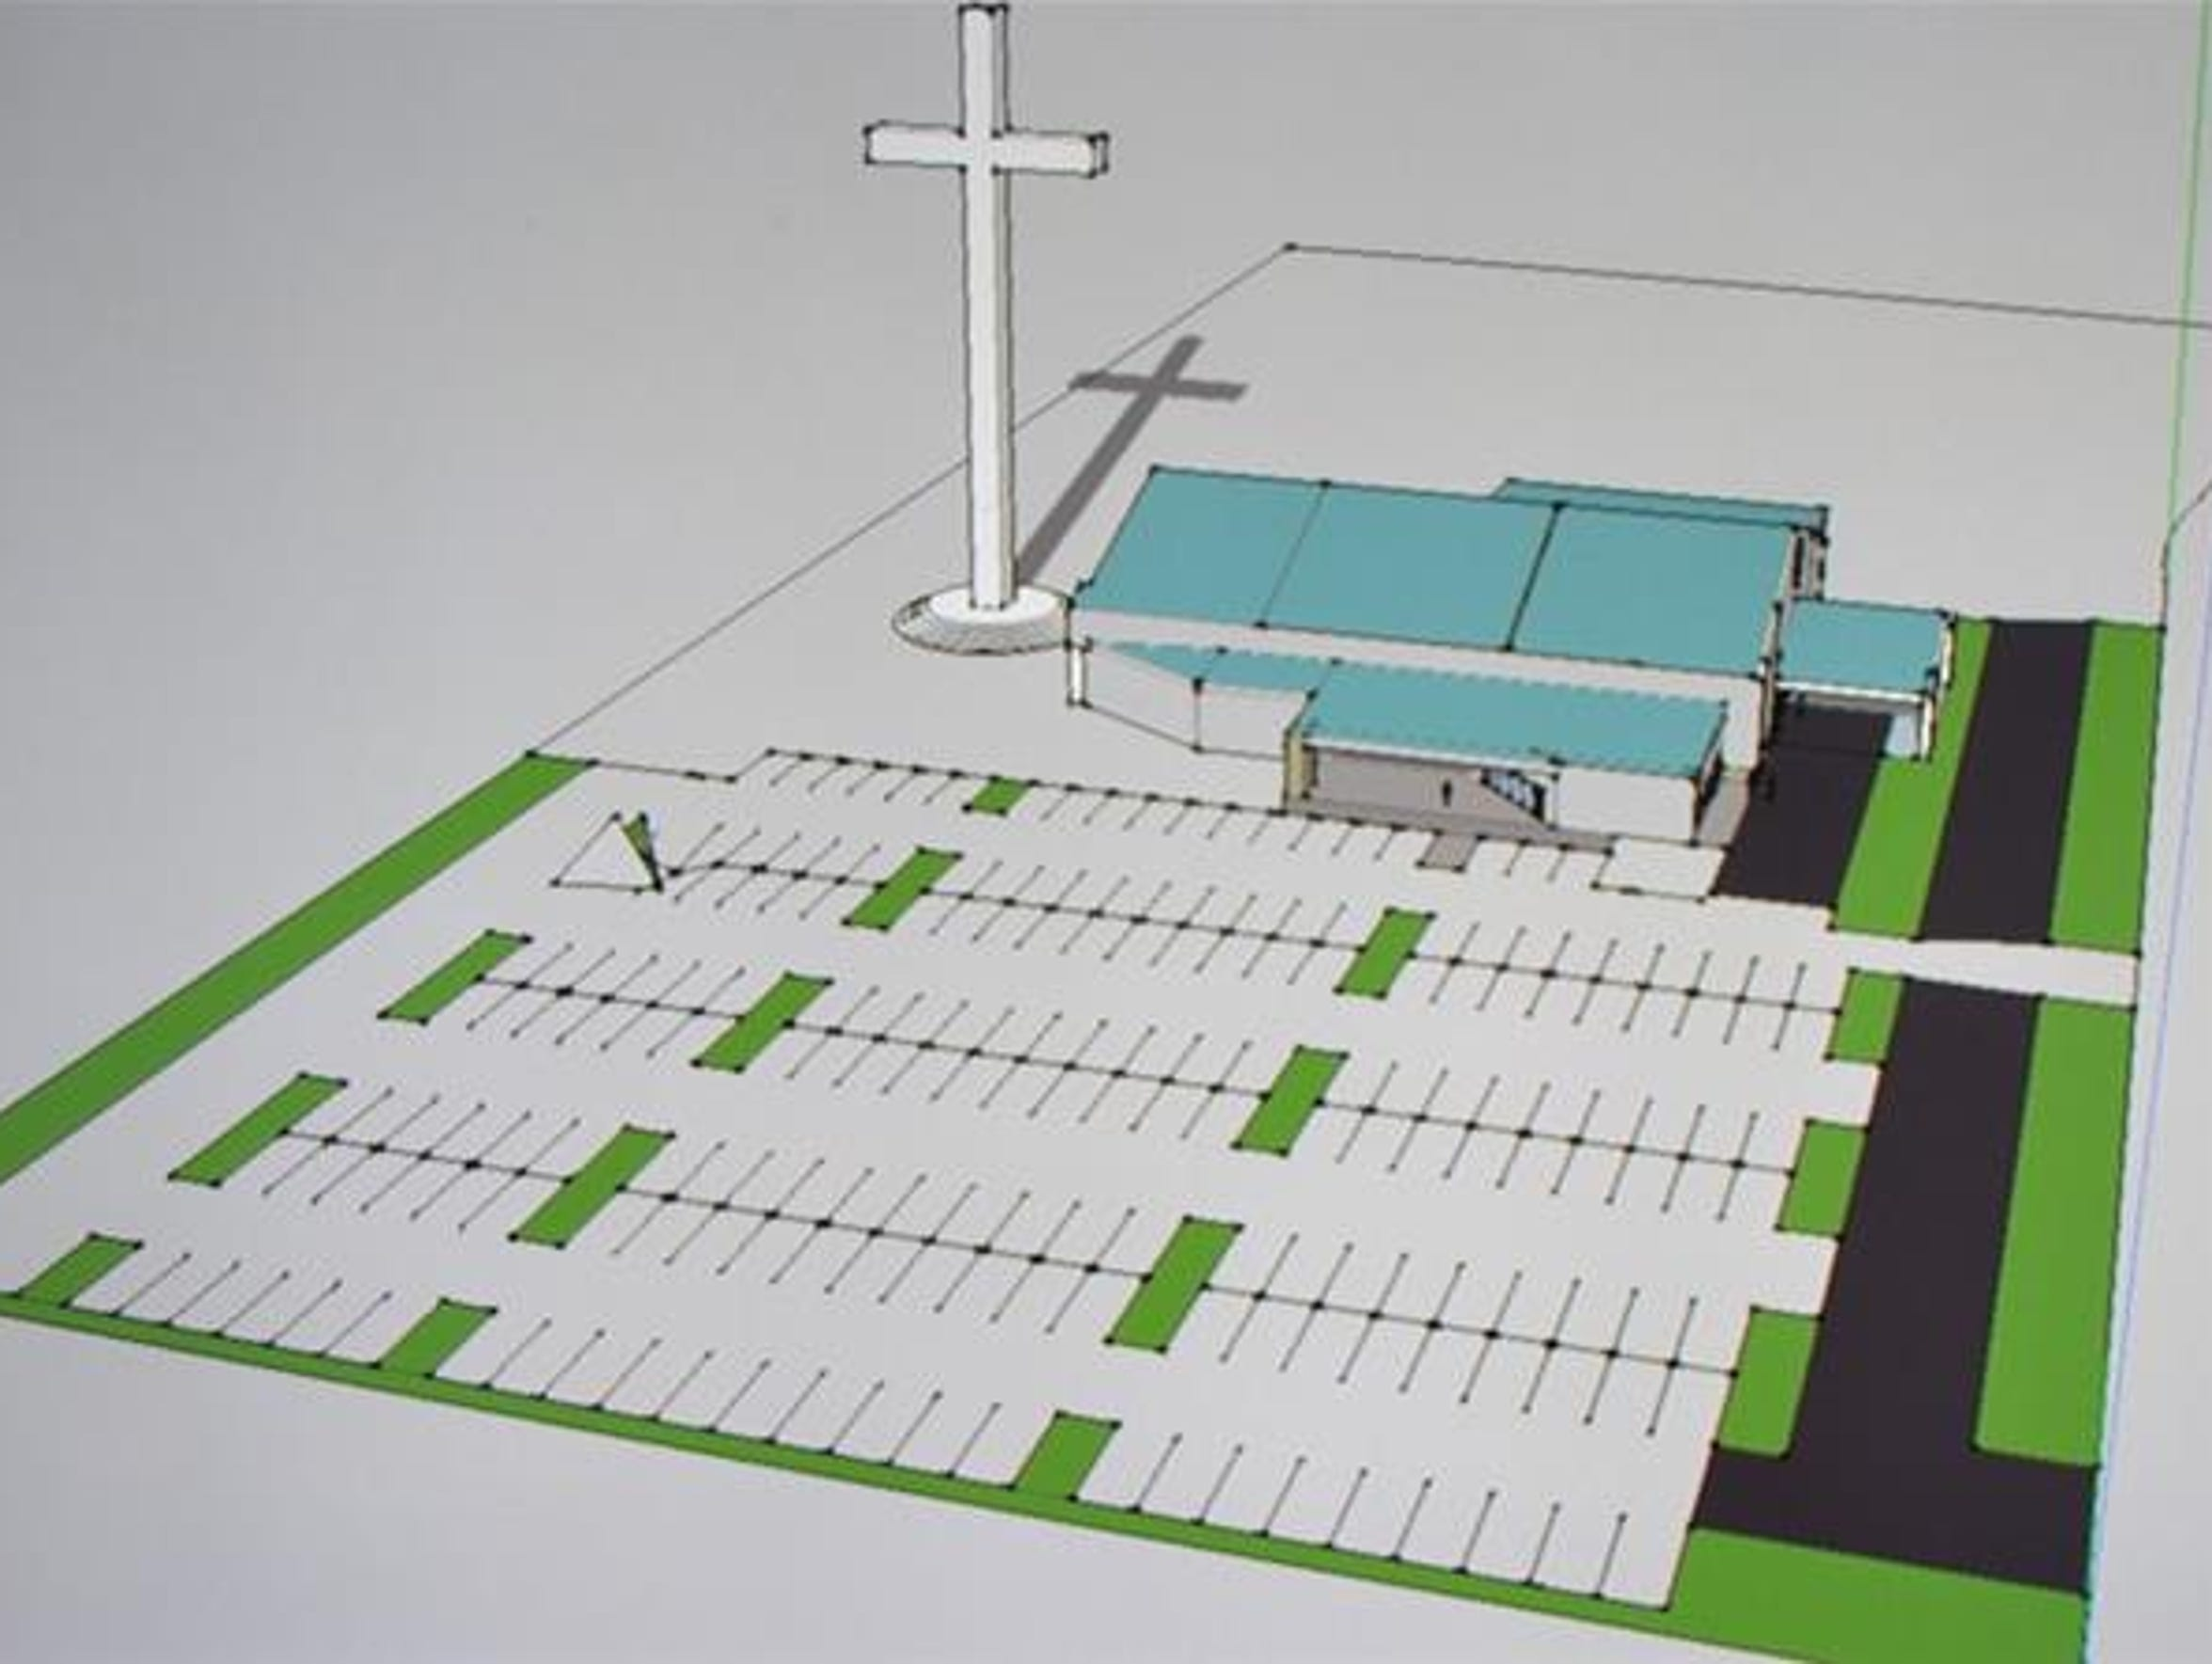 The proposed Corpus Christi Cross will stand over 200